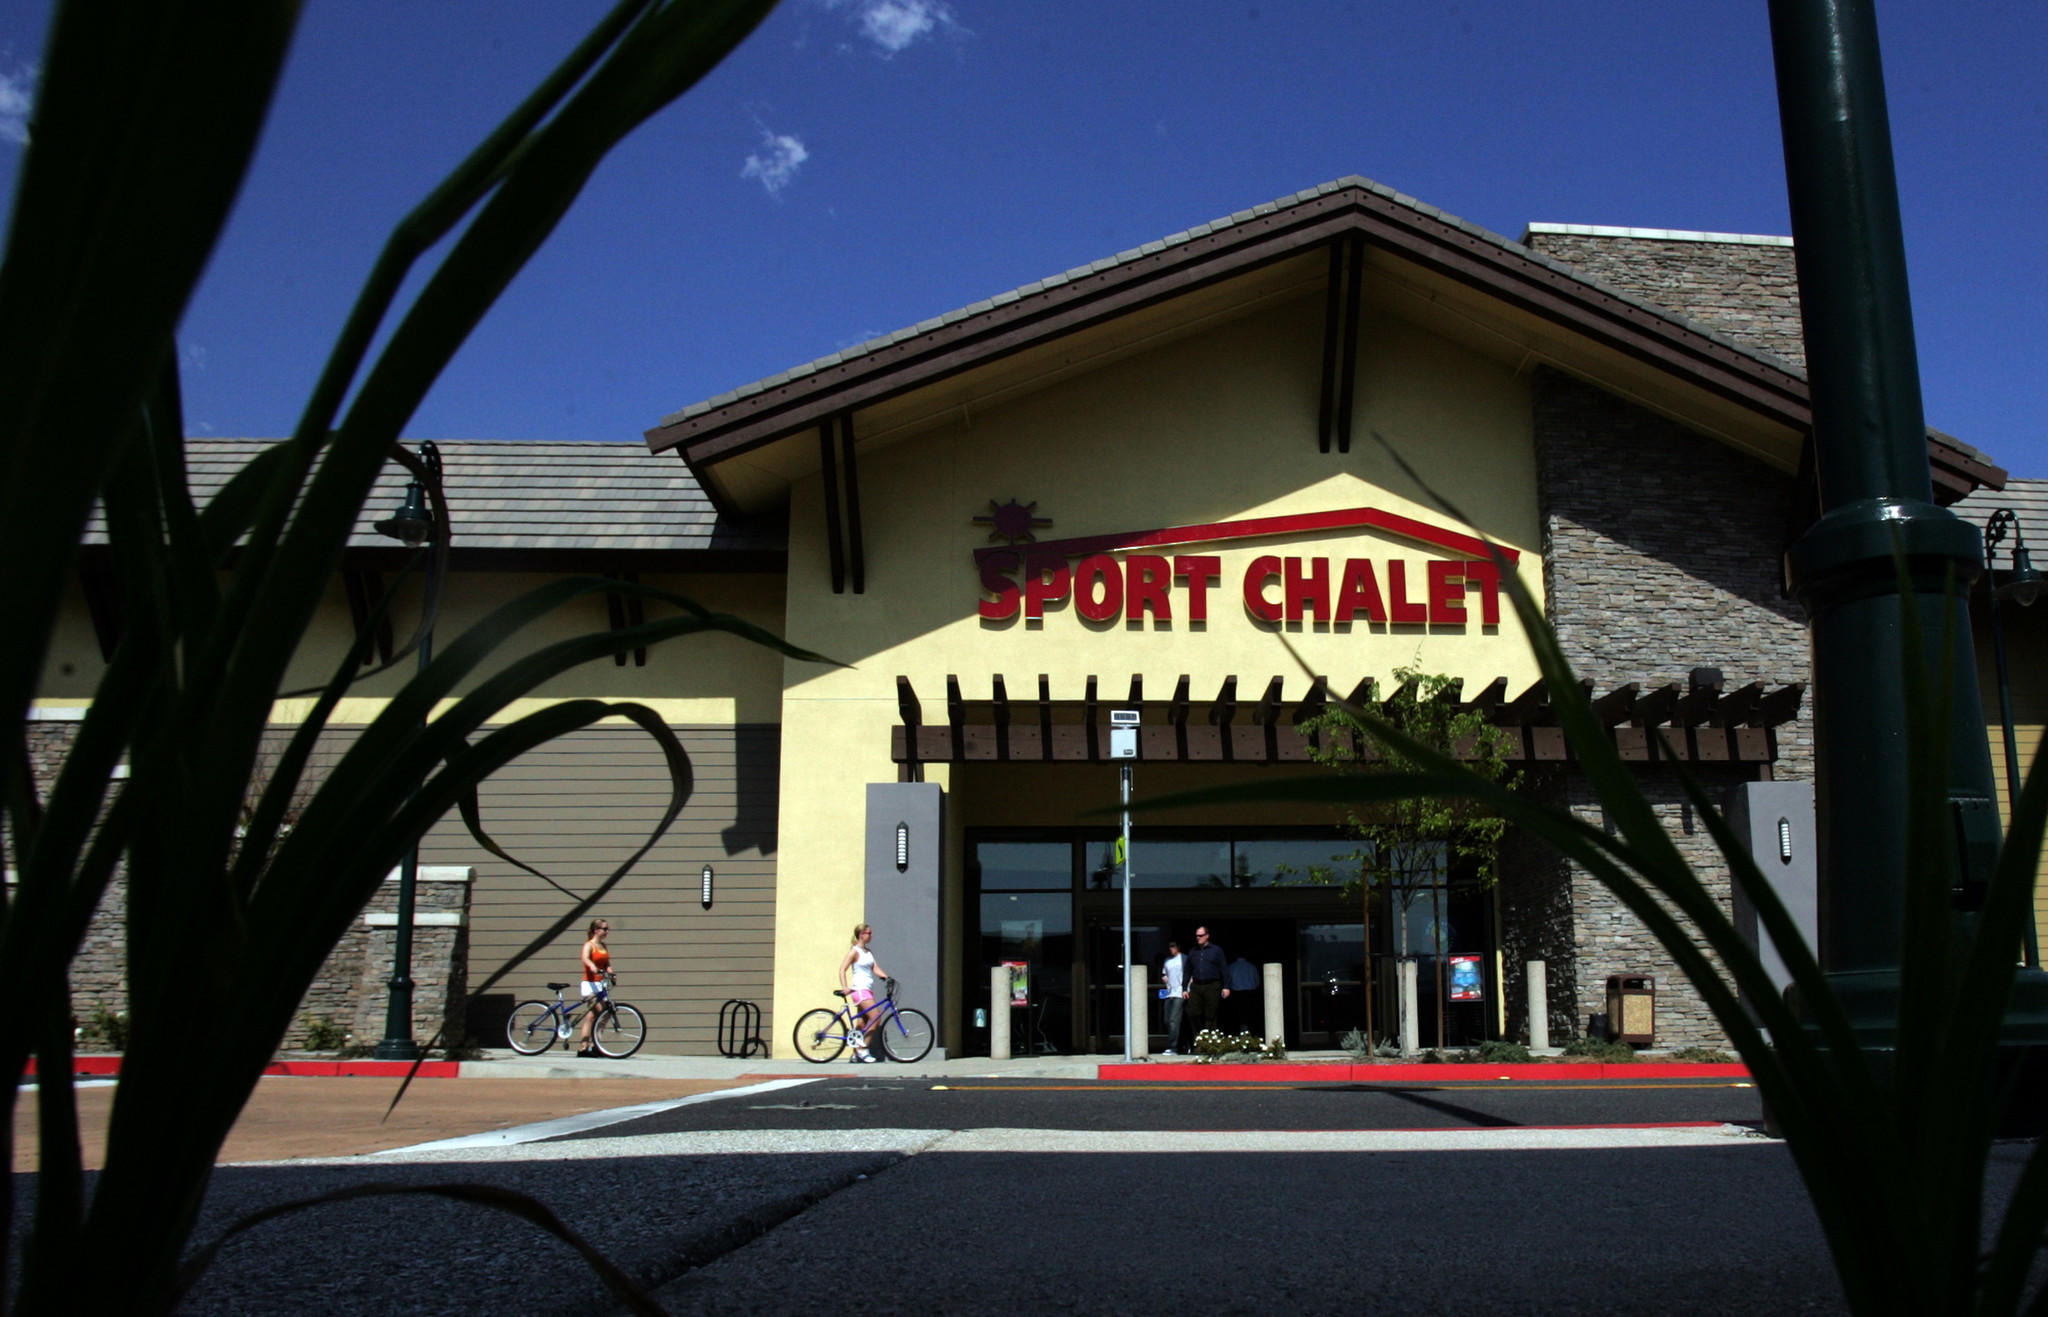 The Sport Chalet chain closed its doors last year.